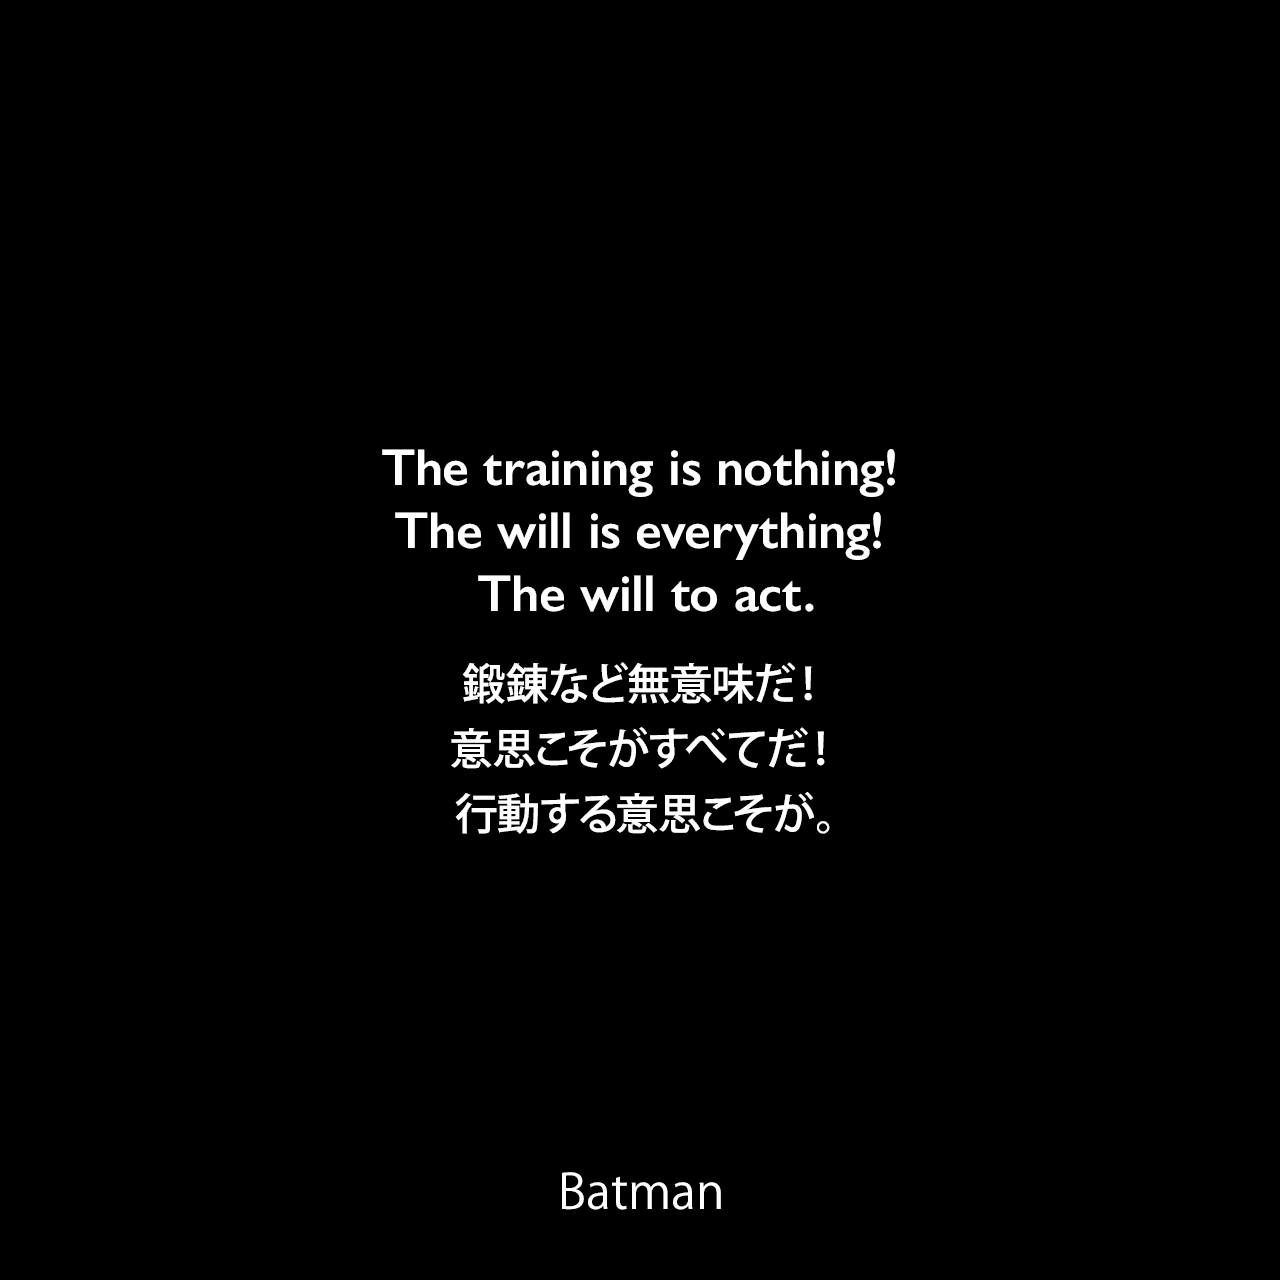 The training is nothing! The will is everything! The will to act.鍛錬など無意味だ!意思こそがすべてだ!行動する意思こそが。- Henri Ducard